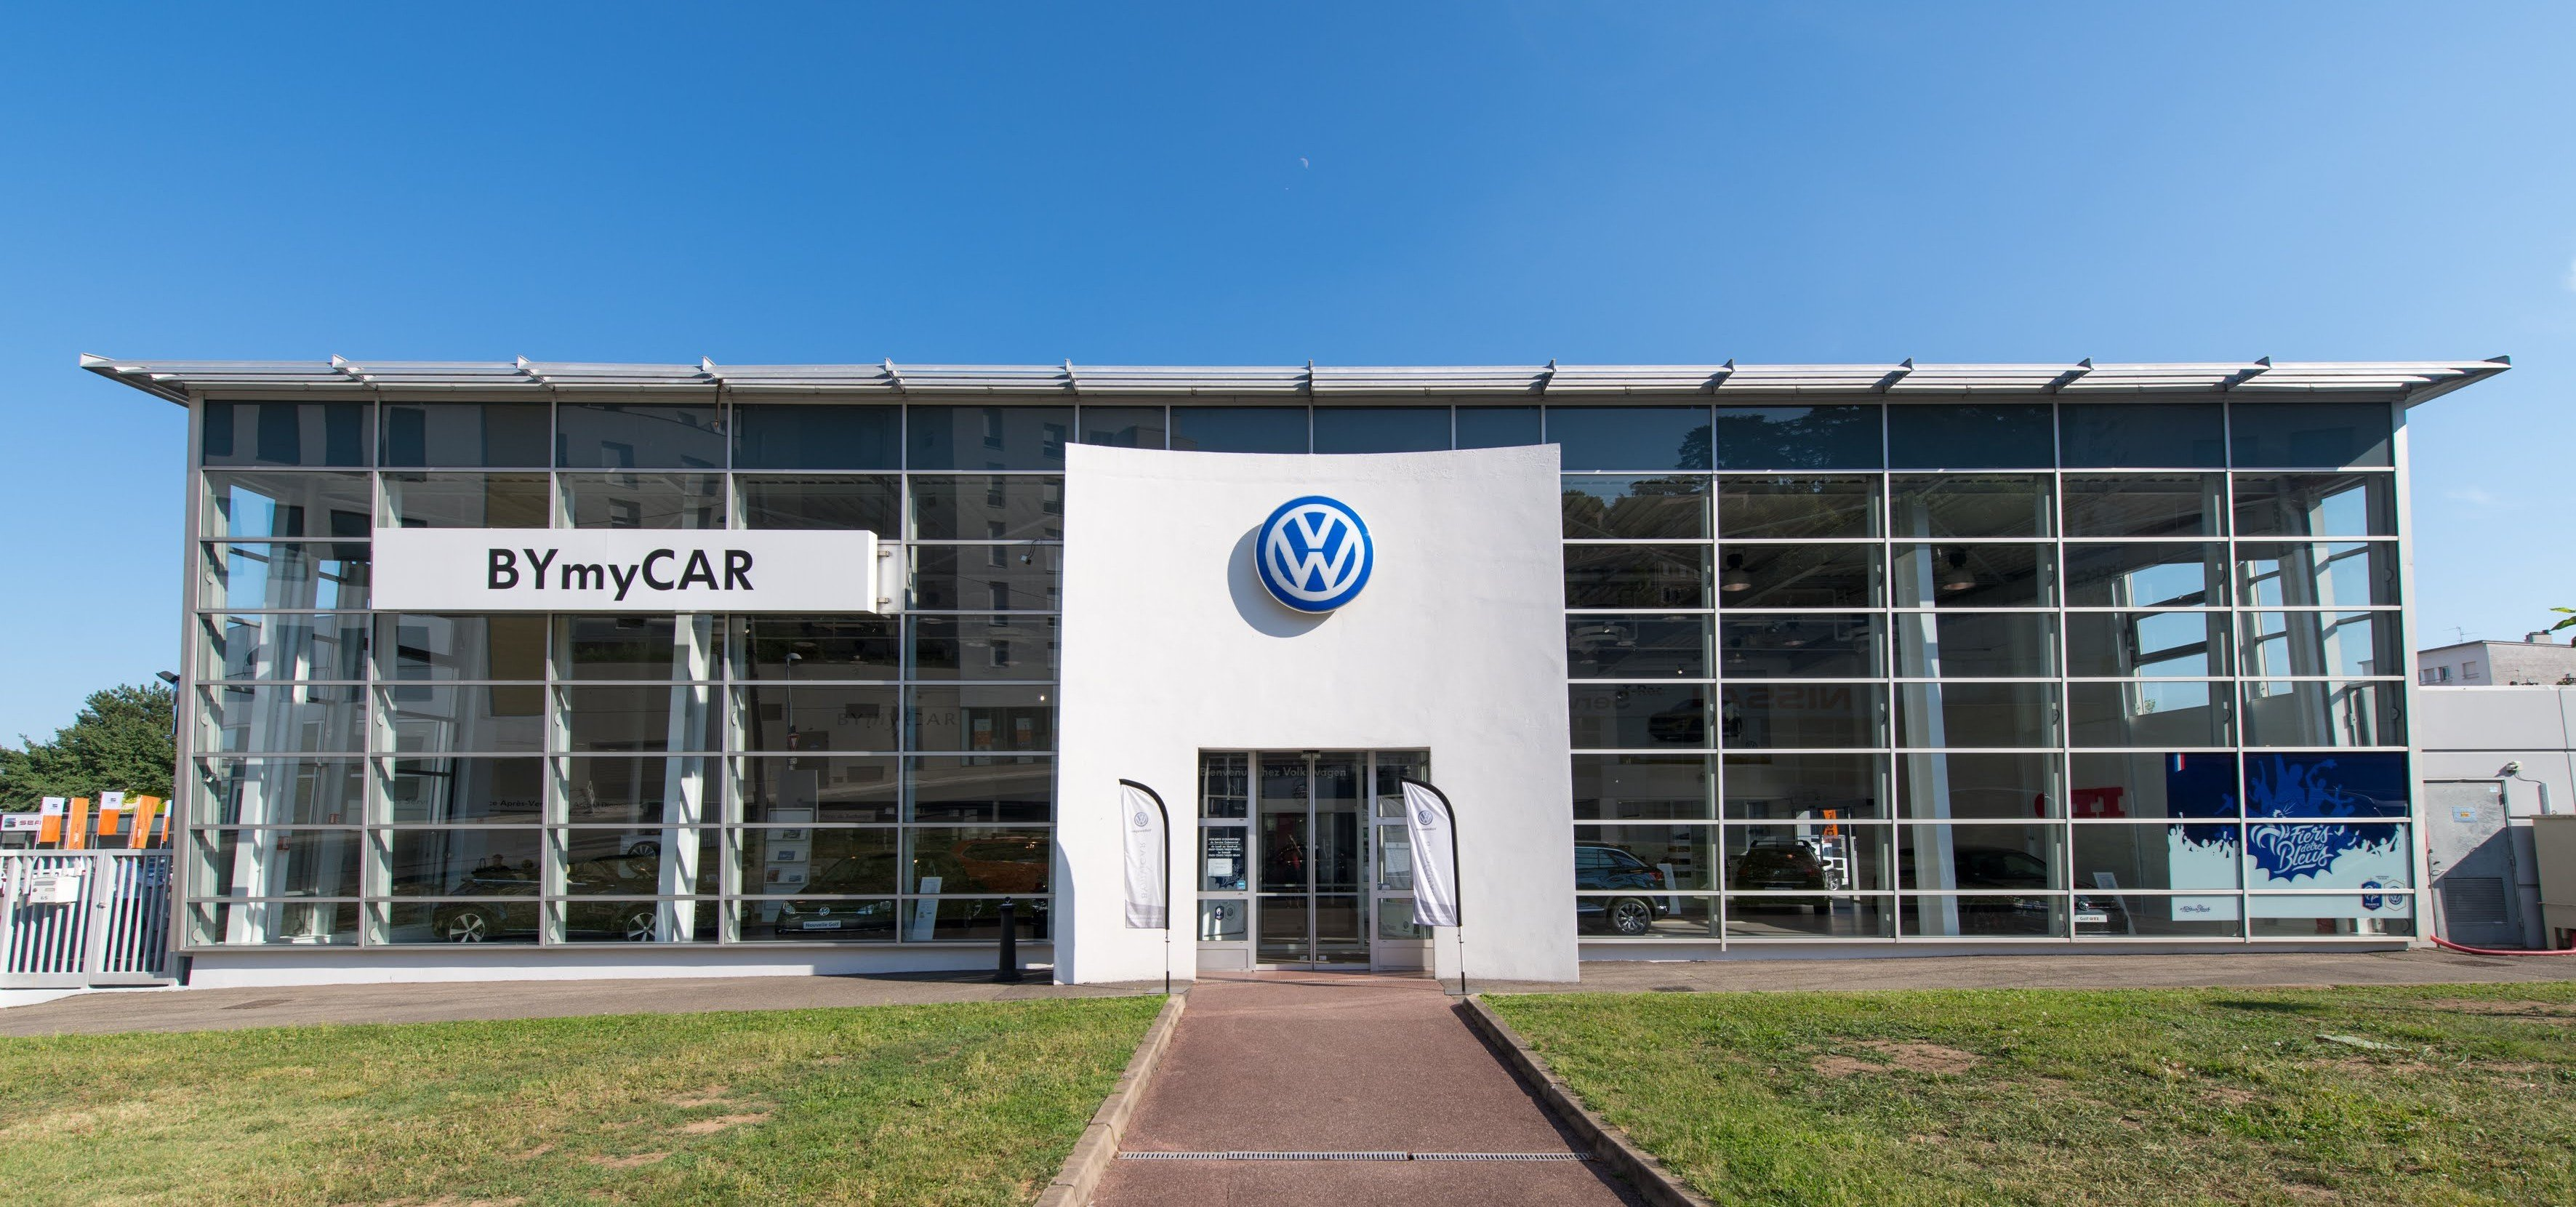 VOLKSWAGEN Utilitaires BYmyCAR Lyon Vaise